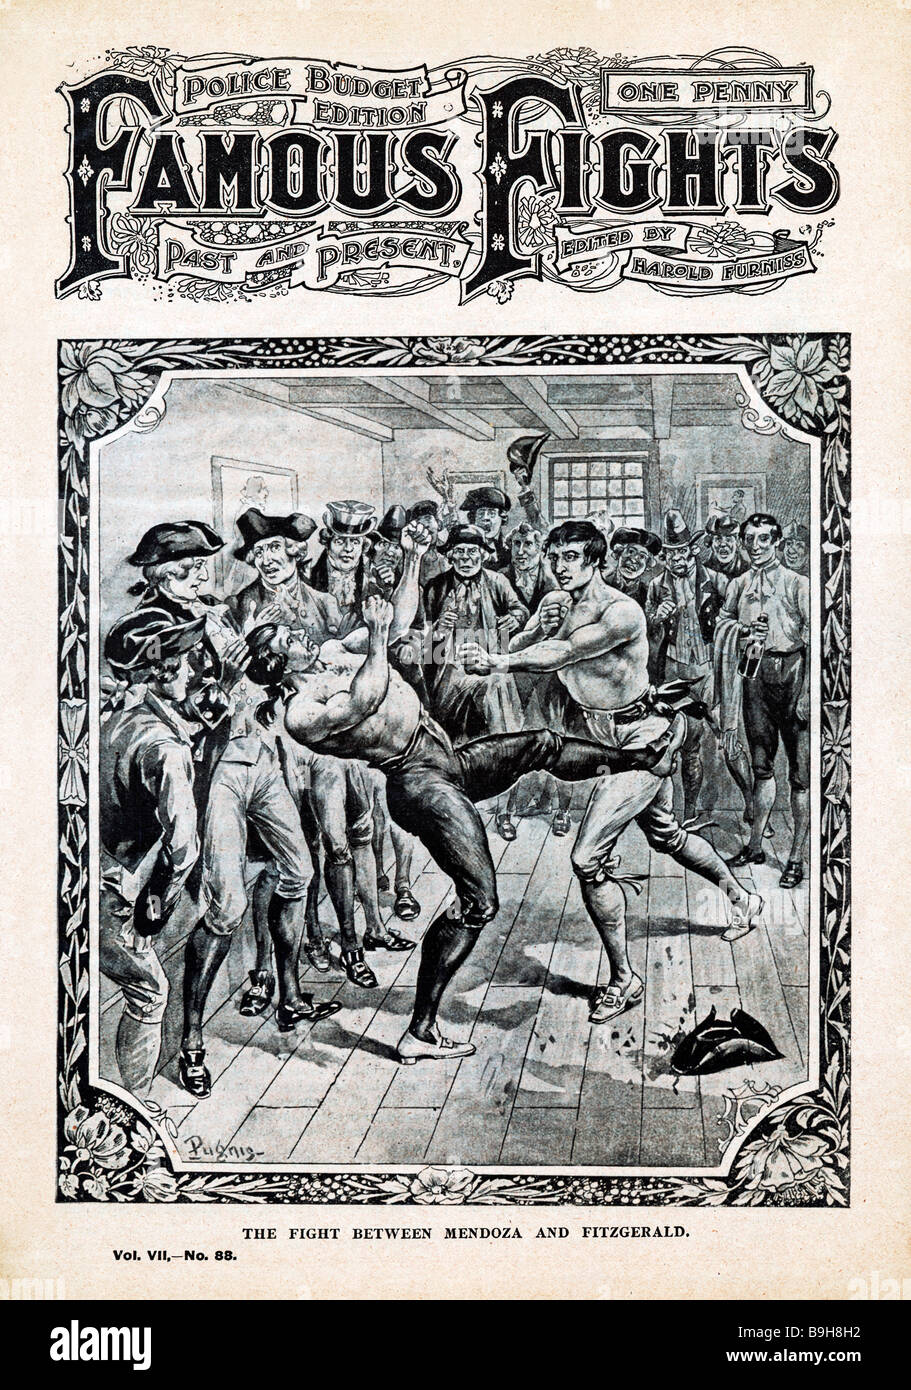 Daniel Mendoza v Squire Fitzgerald Famous Fights cover of the victory of the bout in Dublin in 1791 cover of Famous - Stock Image